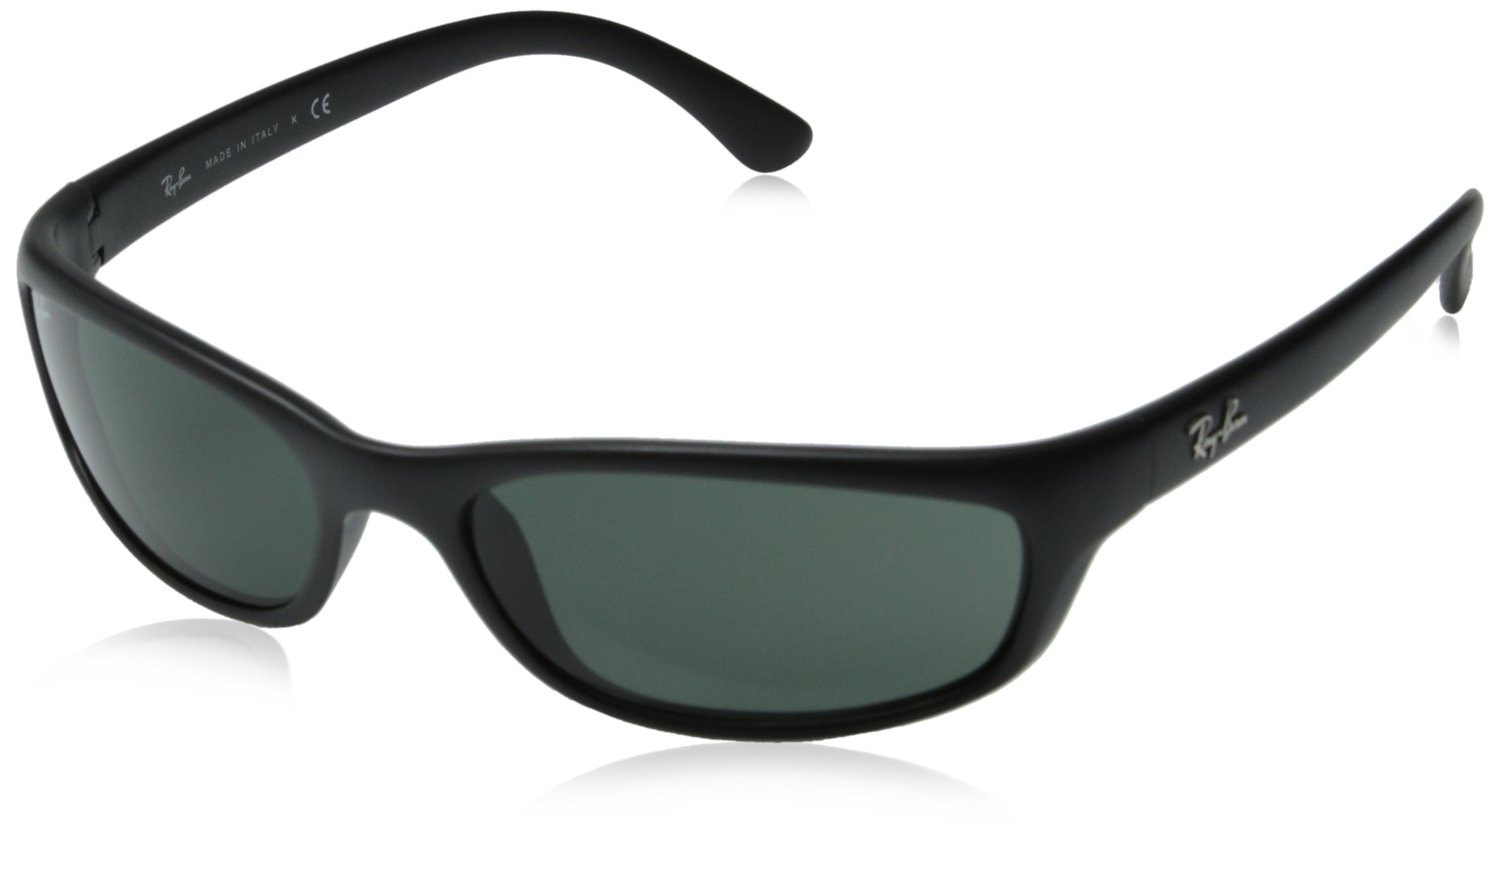 Ray Ban RB4115 Fast and Furious Sunglasses